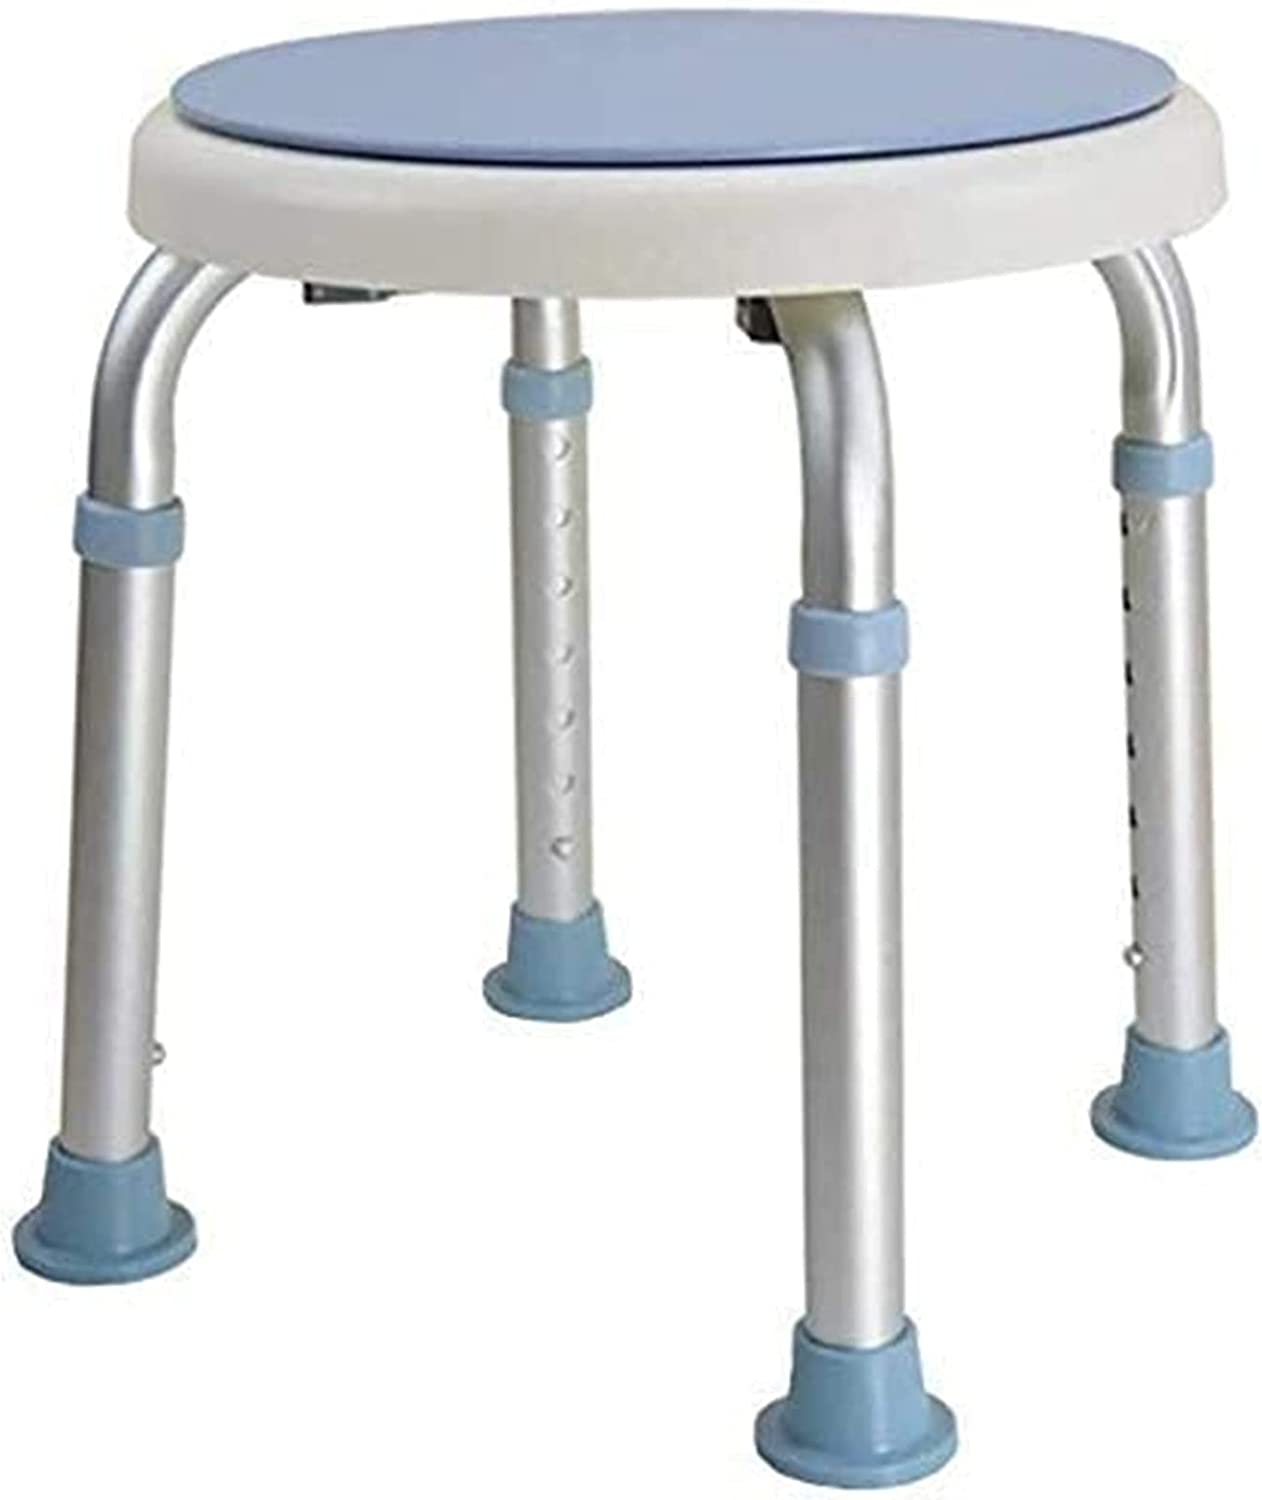 Medical Padded Seat Transfer Bench Round Chair A Height Popular standard Spasm price Shower